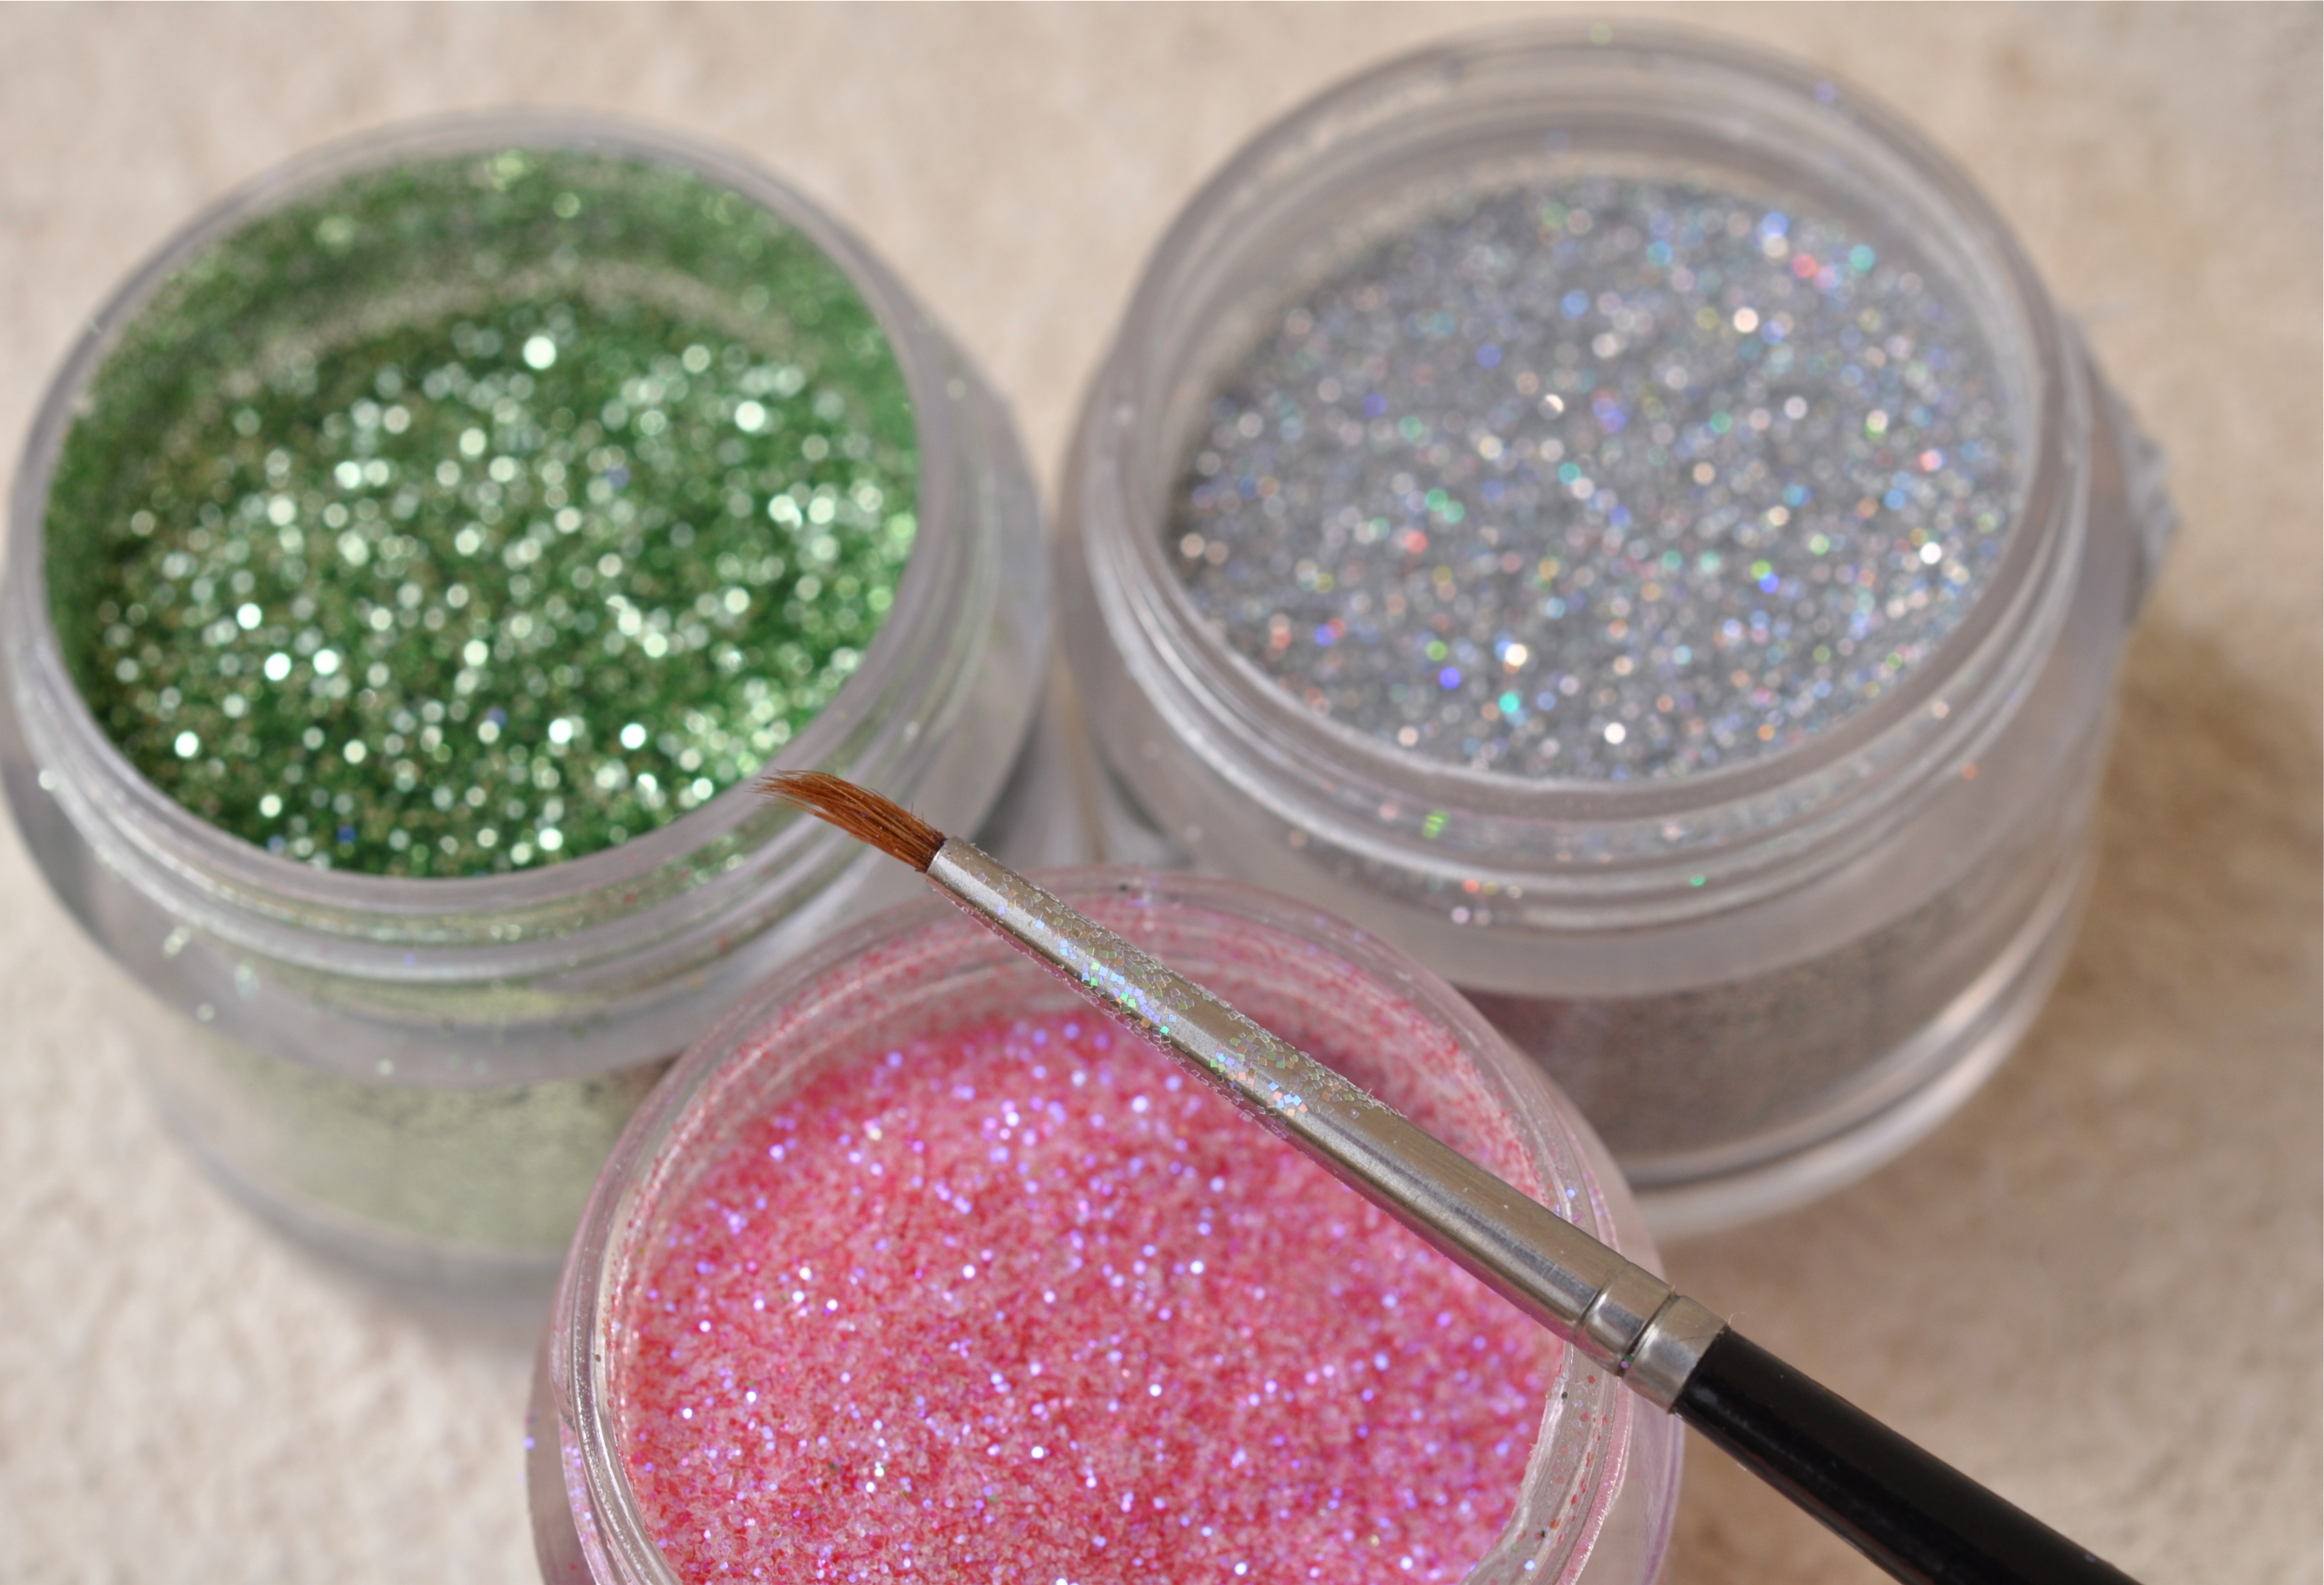 DIY Edible Sparkly Glitter in 5 Easy Steps